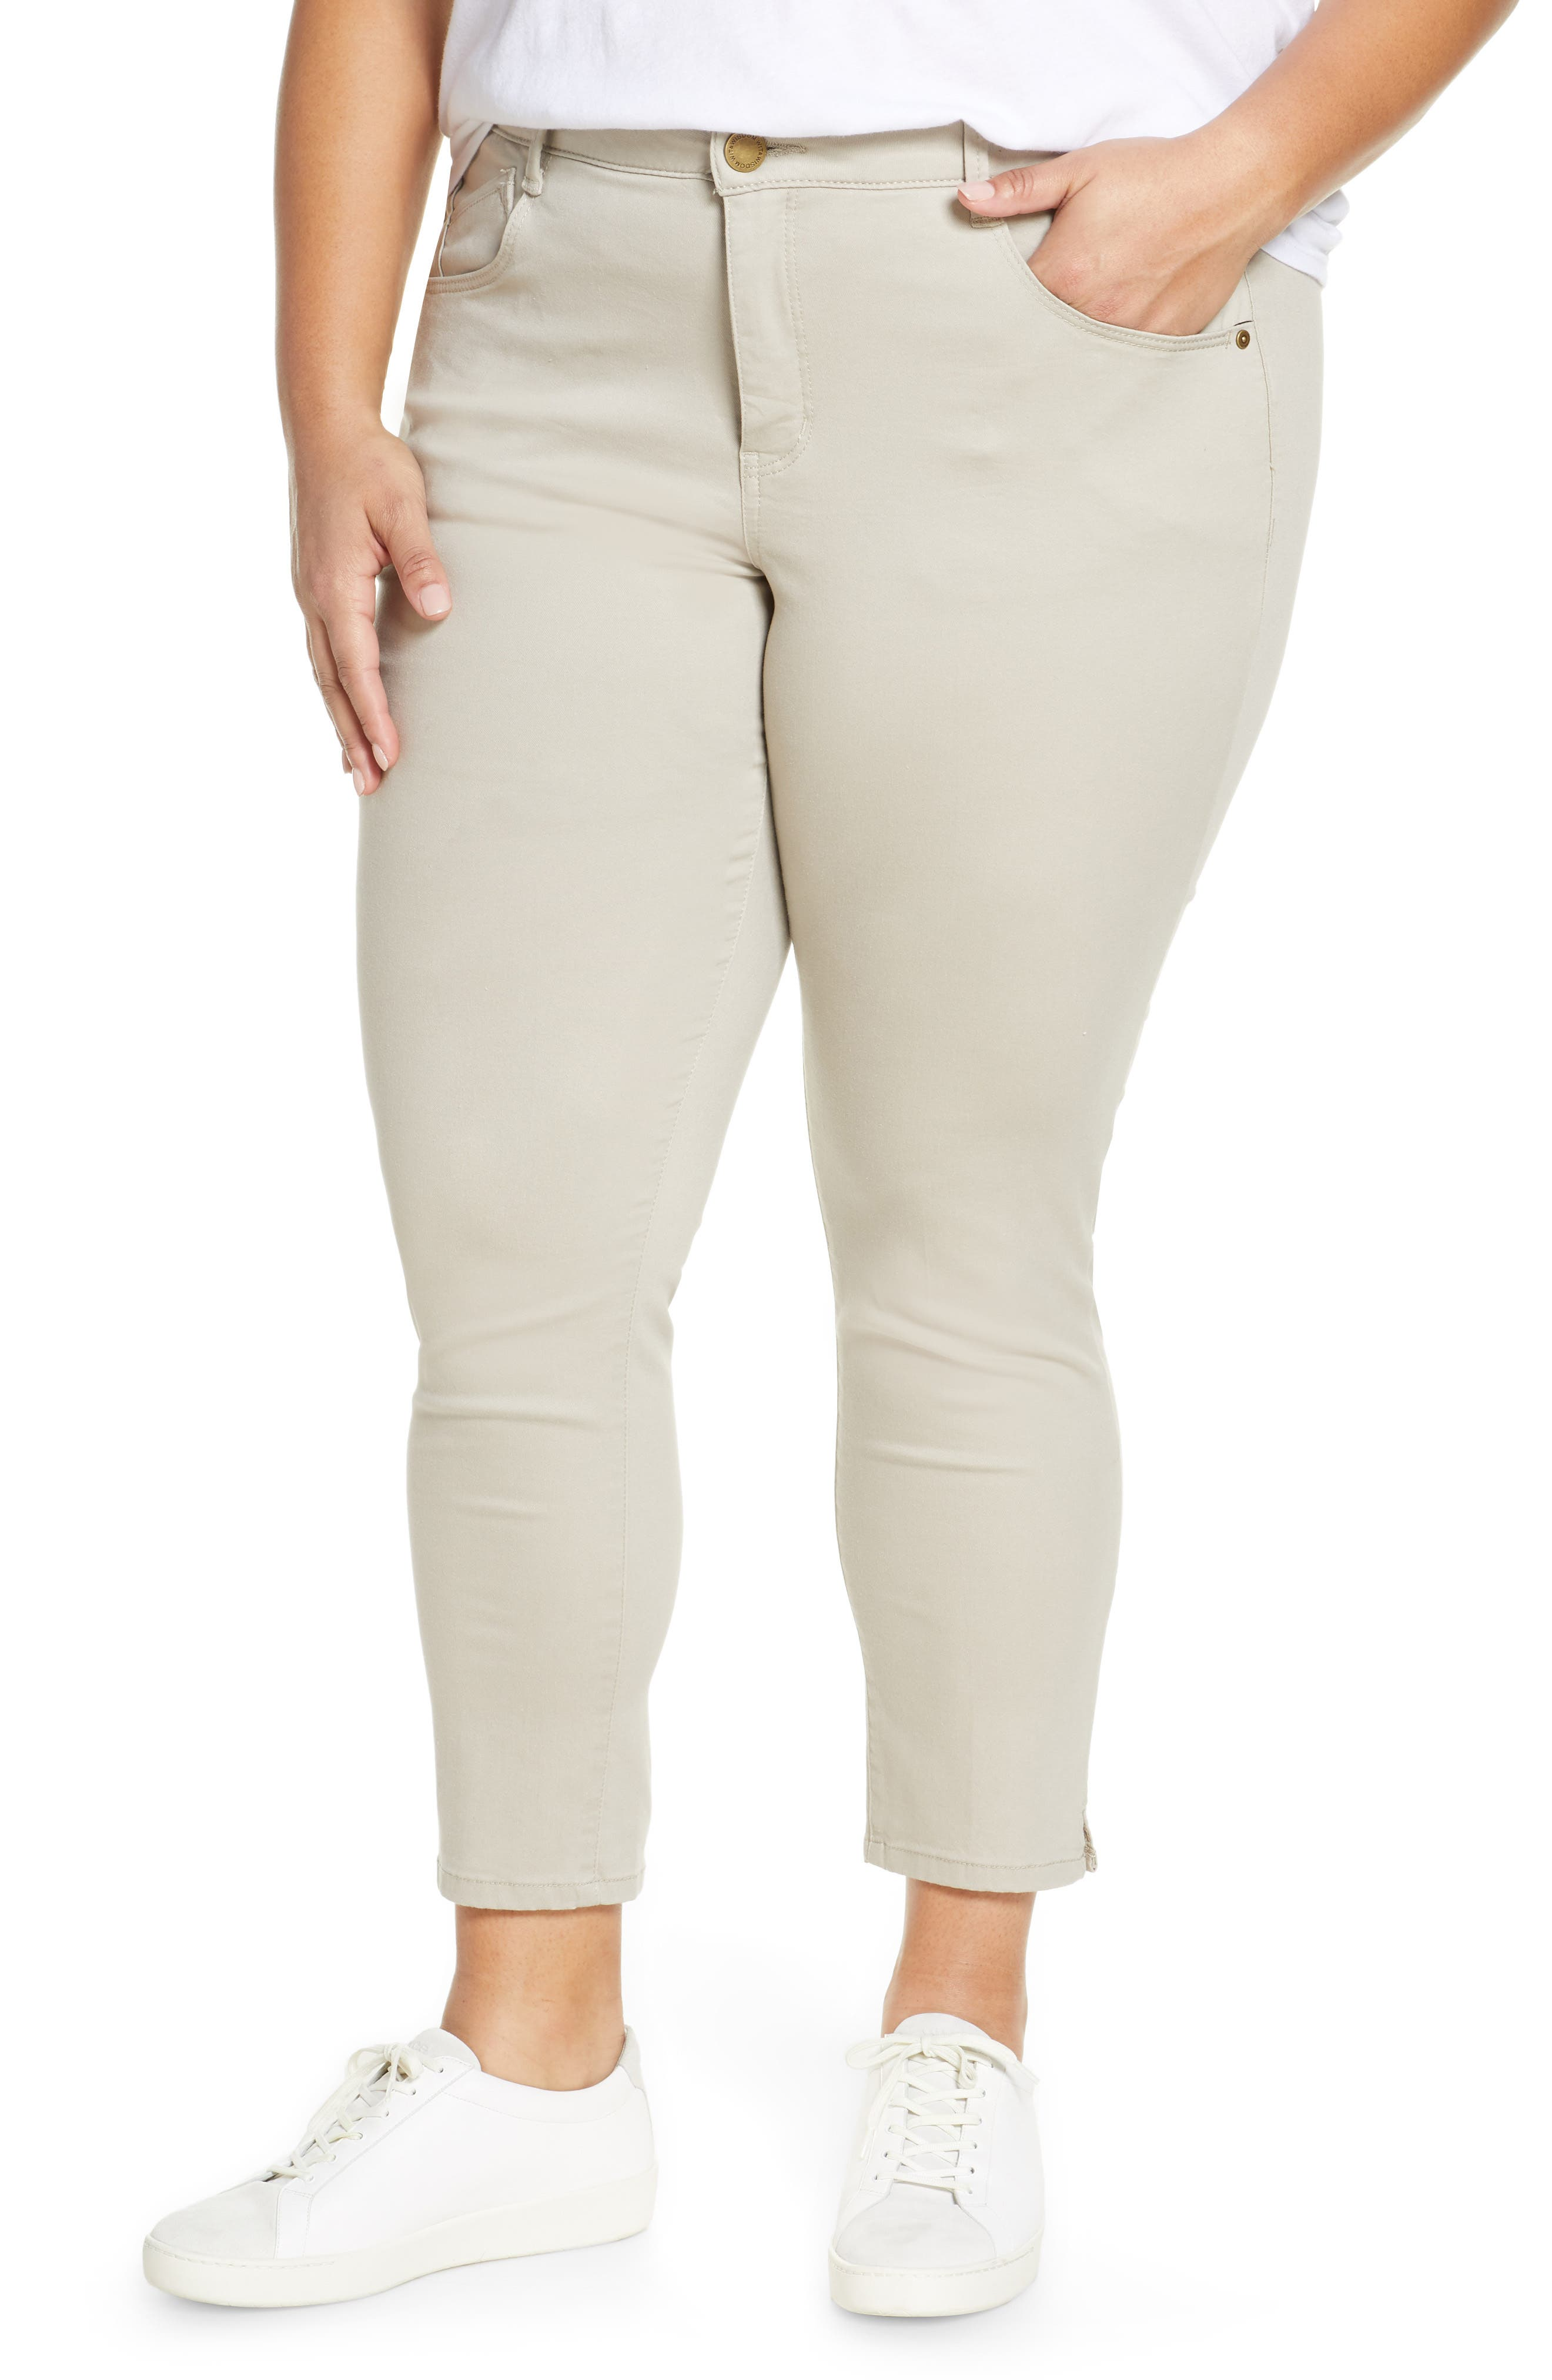 Plus  Women's Wit & Wisdom Ab-Solution High Waist Ankle Skinny Pants,  22W - Beige (Plus ) (Nordstrom Exclusive)